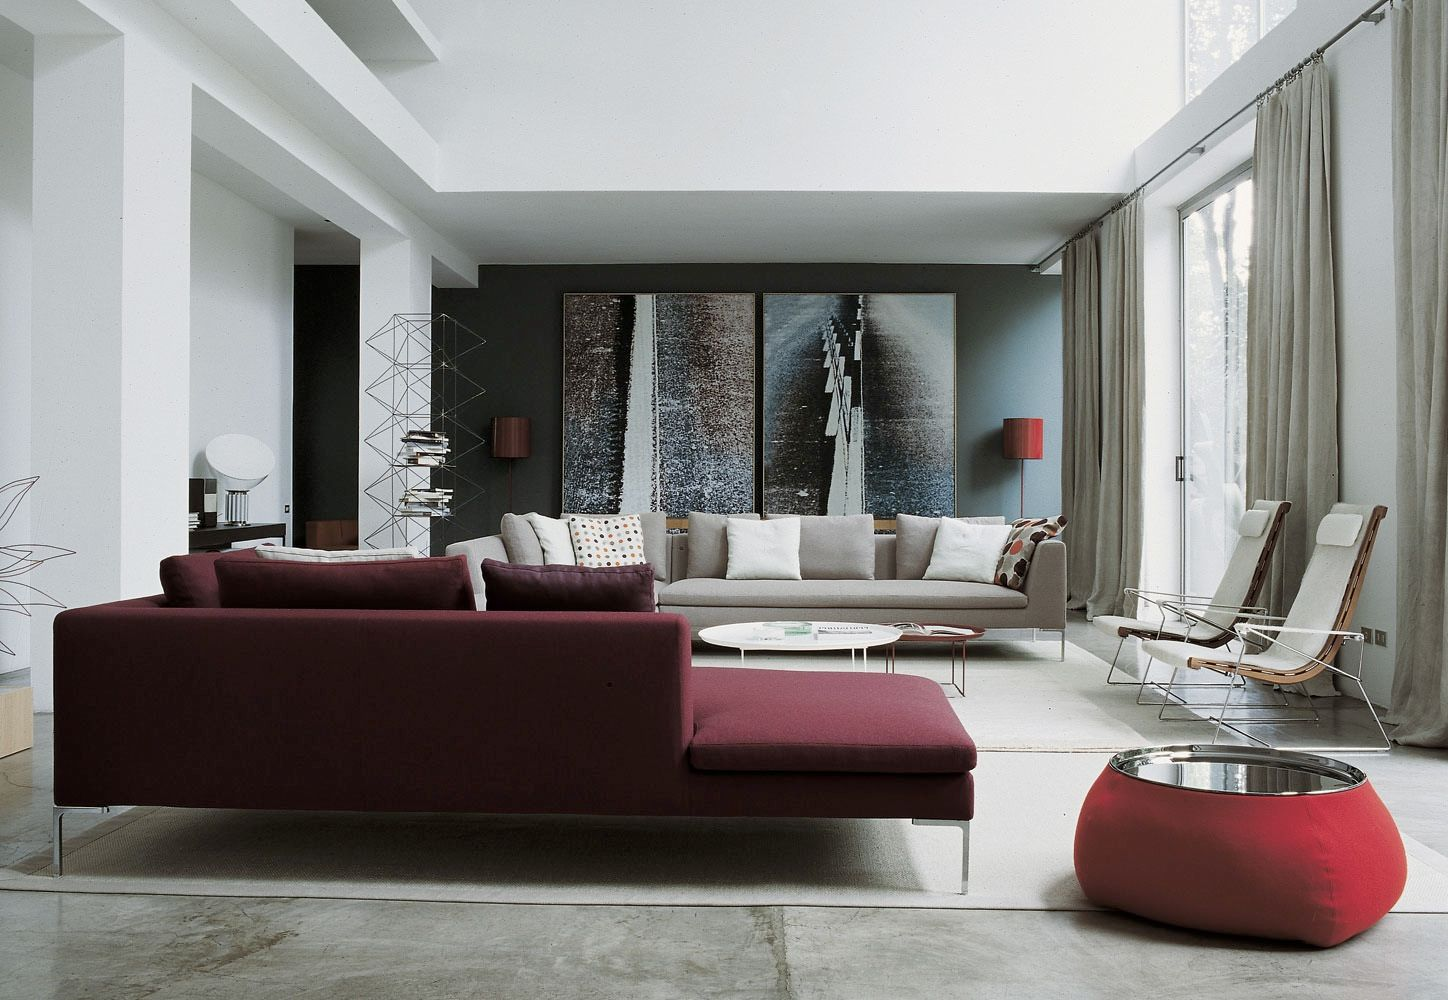 Best Masculine Grey Living Space For Interior Home Design With 400 x 300